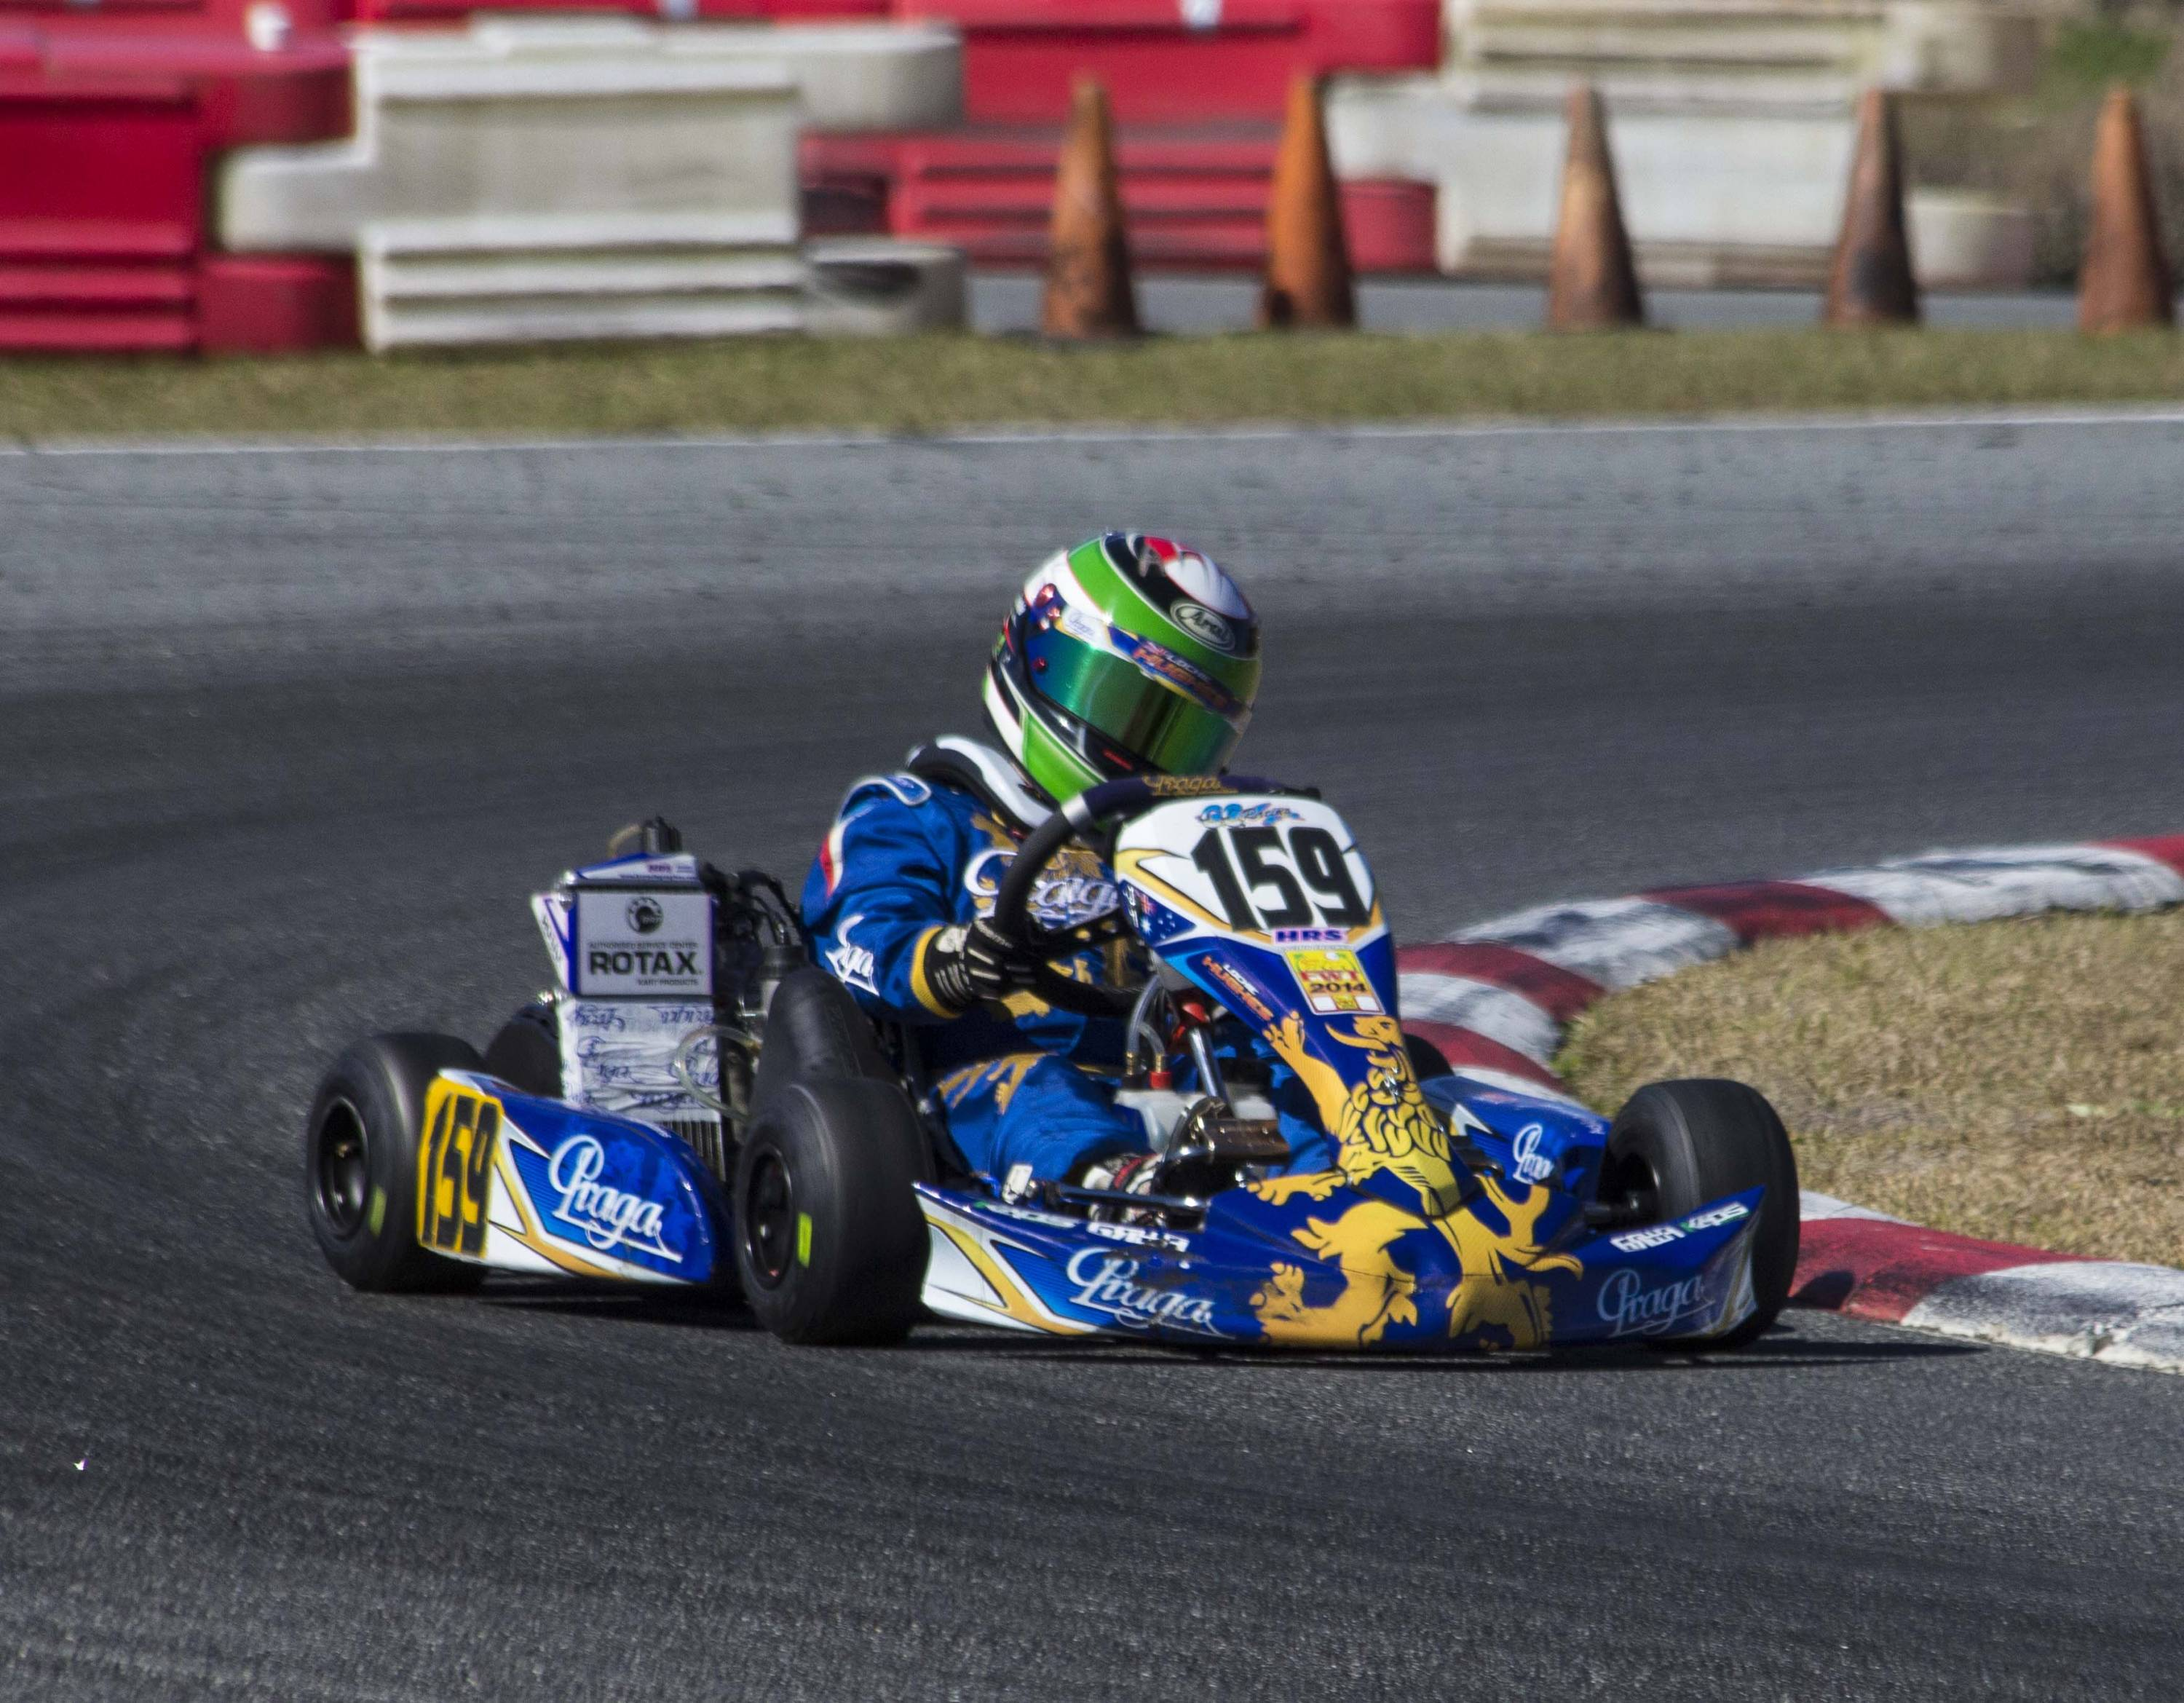 Rental Cars In Ocala Florida Report: Praga at the 2nd Round of the Florida Winter Tour ROTAX ...